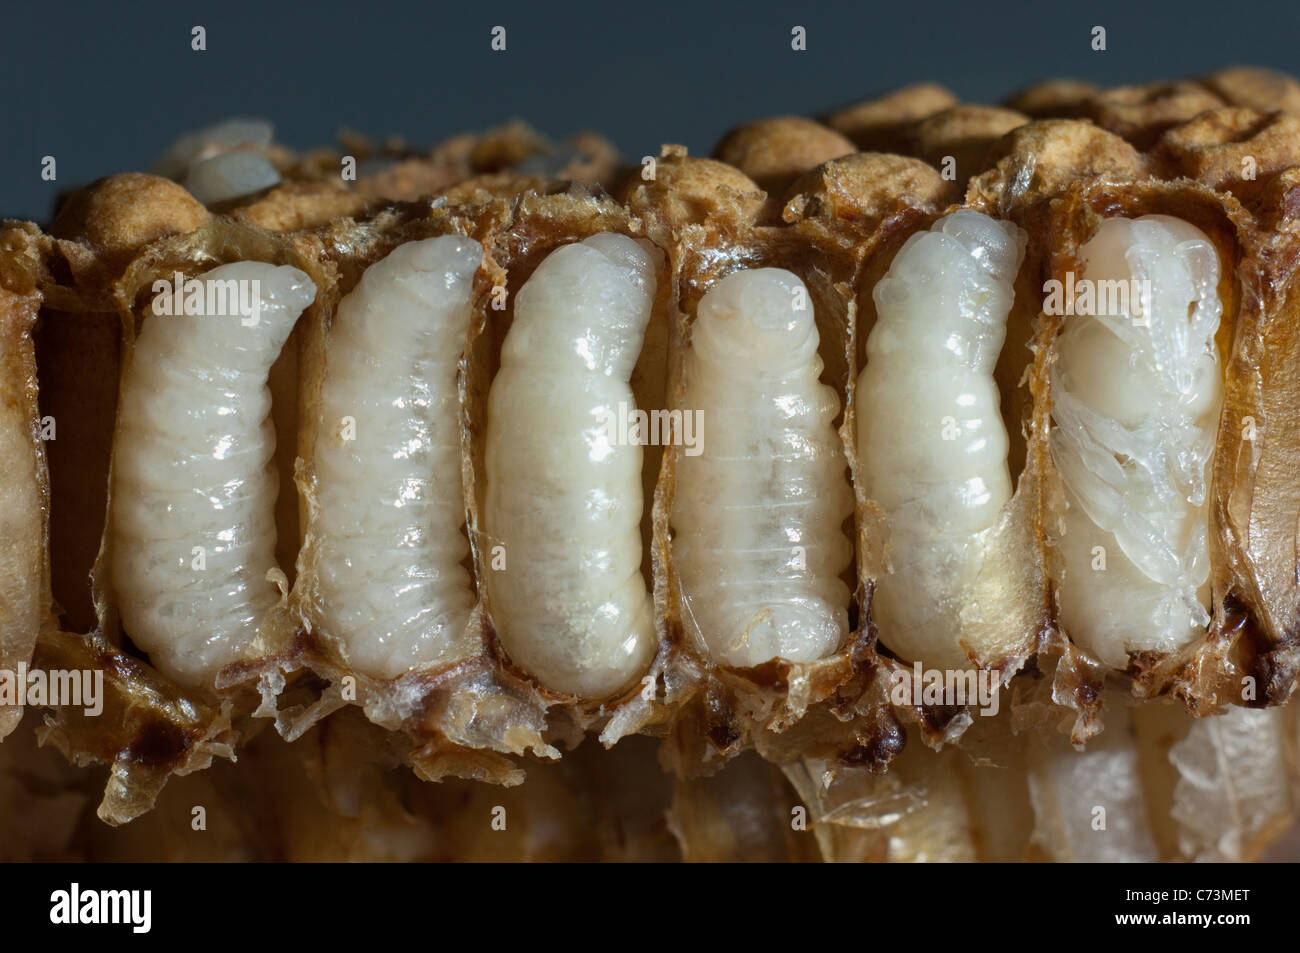 Honey Bee (Apis mellifera, Apis mellifica). Close-up of honeycomb with opened cells, showing male larvae in each - Stock Image